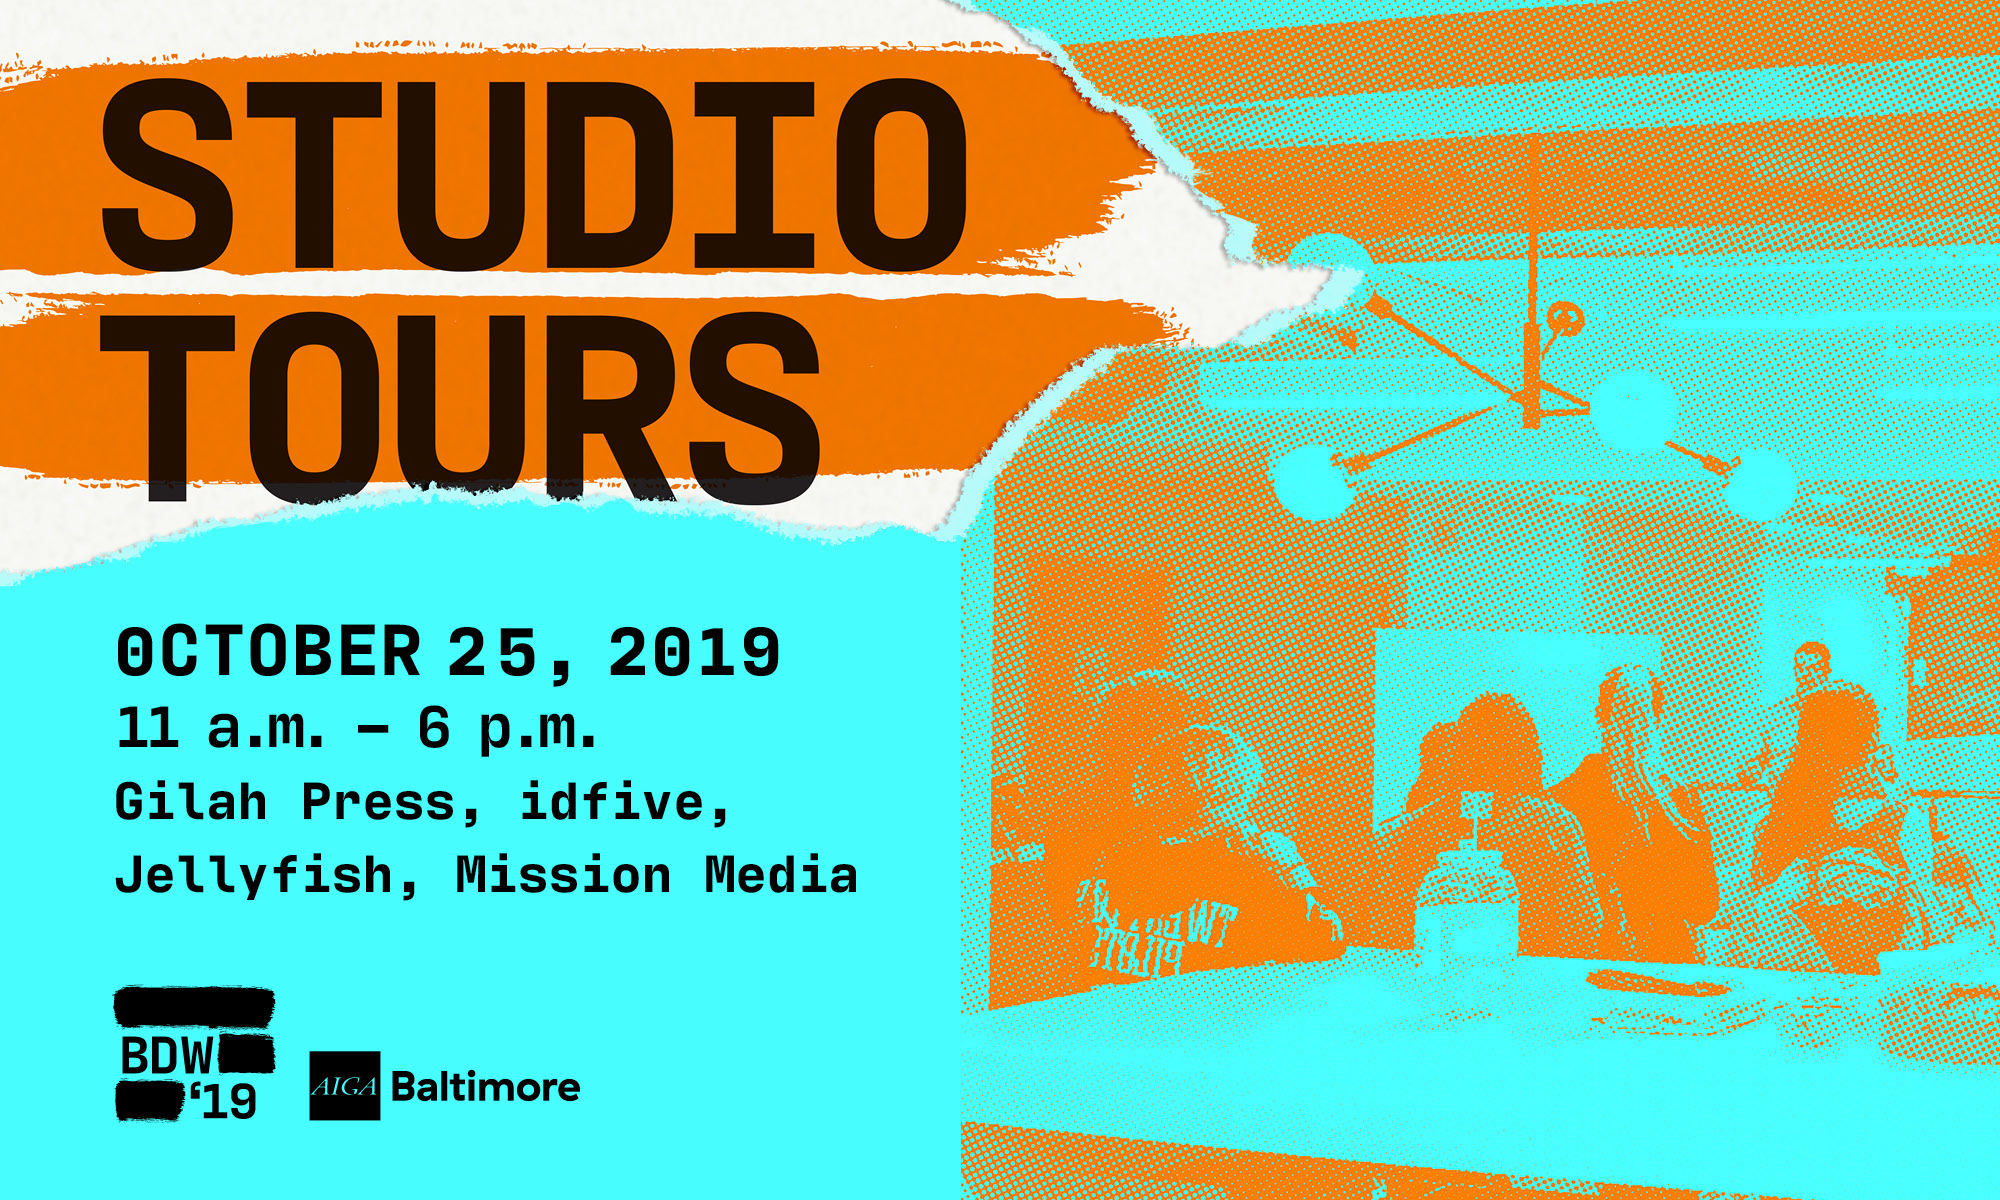 Baltimore Studio tours: Gilah Press, idfive, Jellyfish, Mission Media